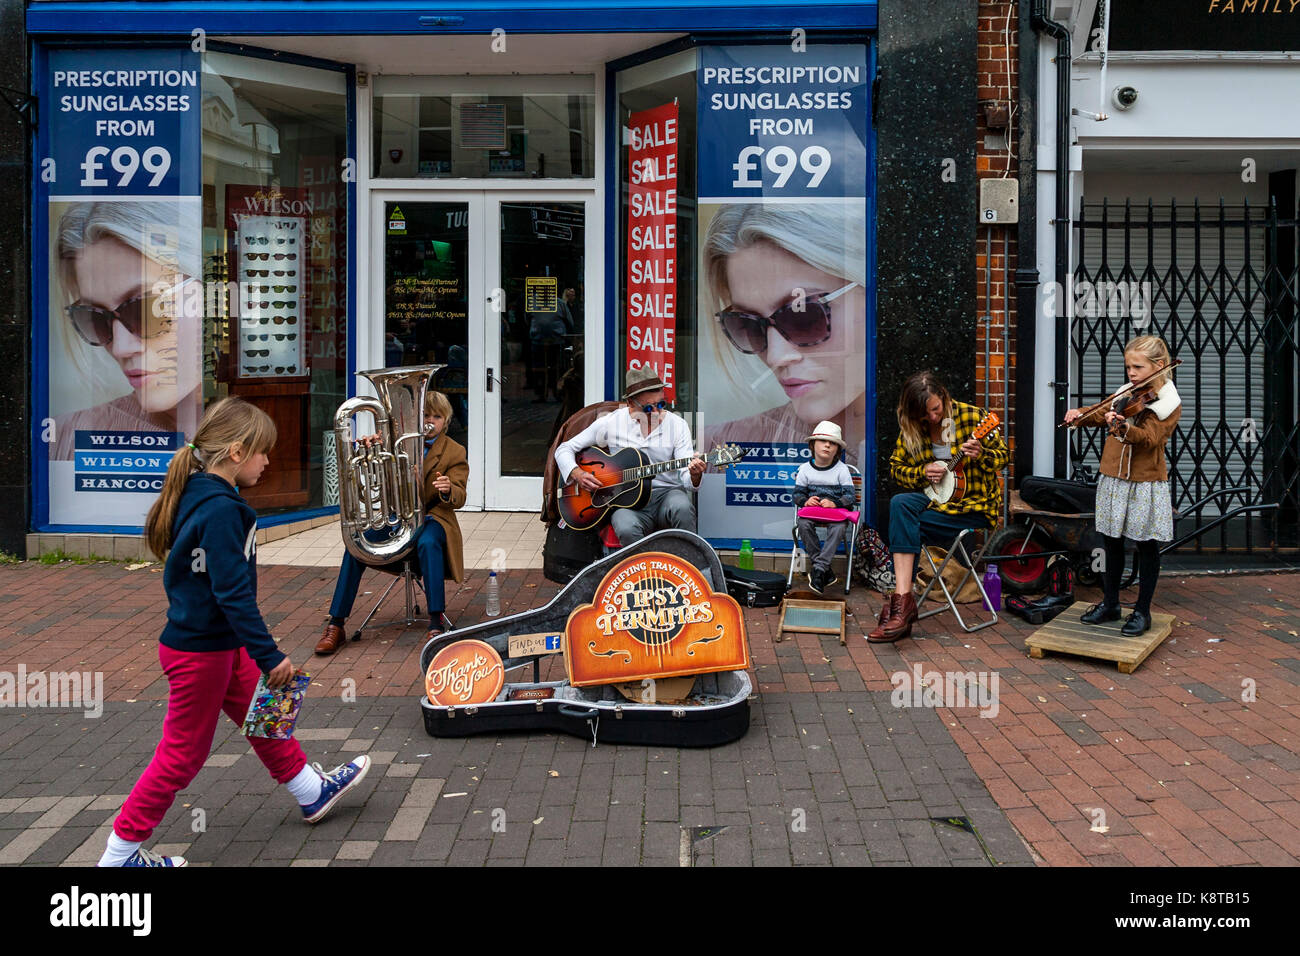 A Young Family Of Street Entertainers Perform In The High Street, Lewes, East Sussex, UK. - Stock Image